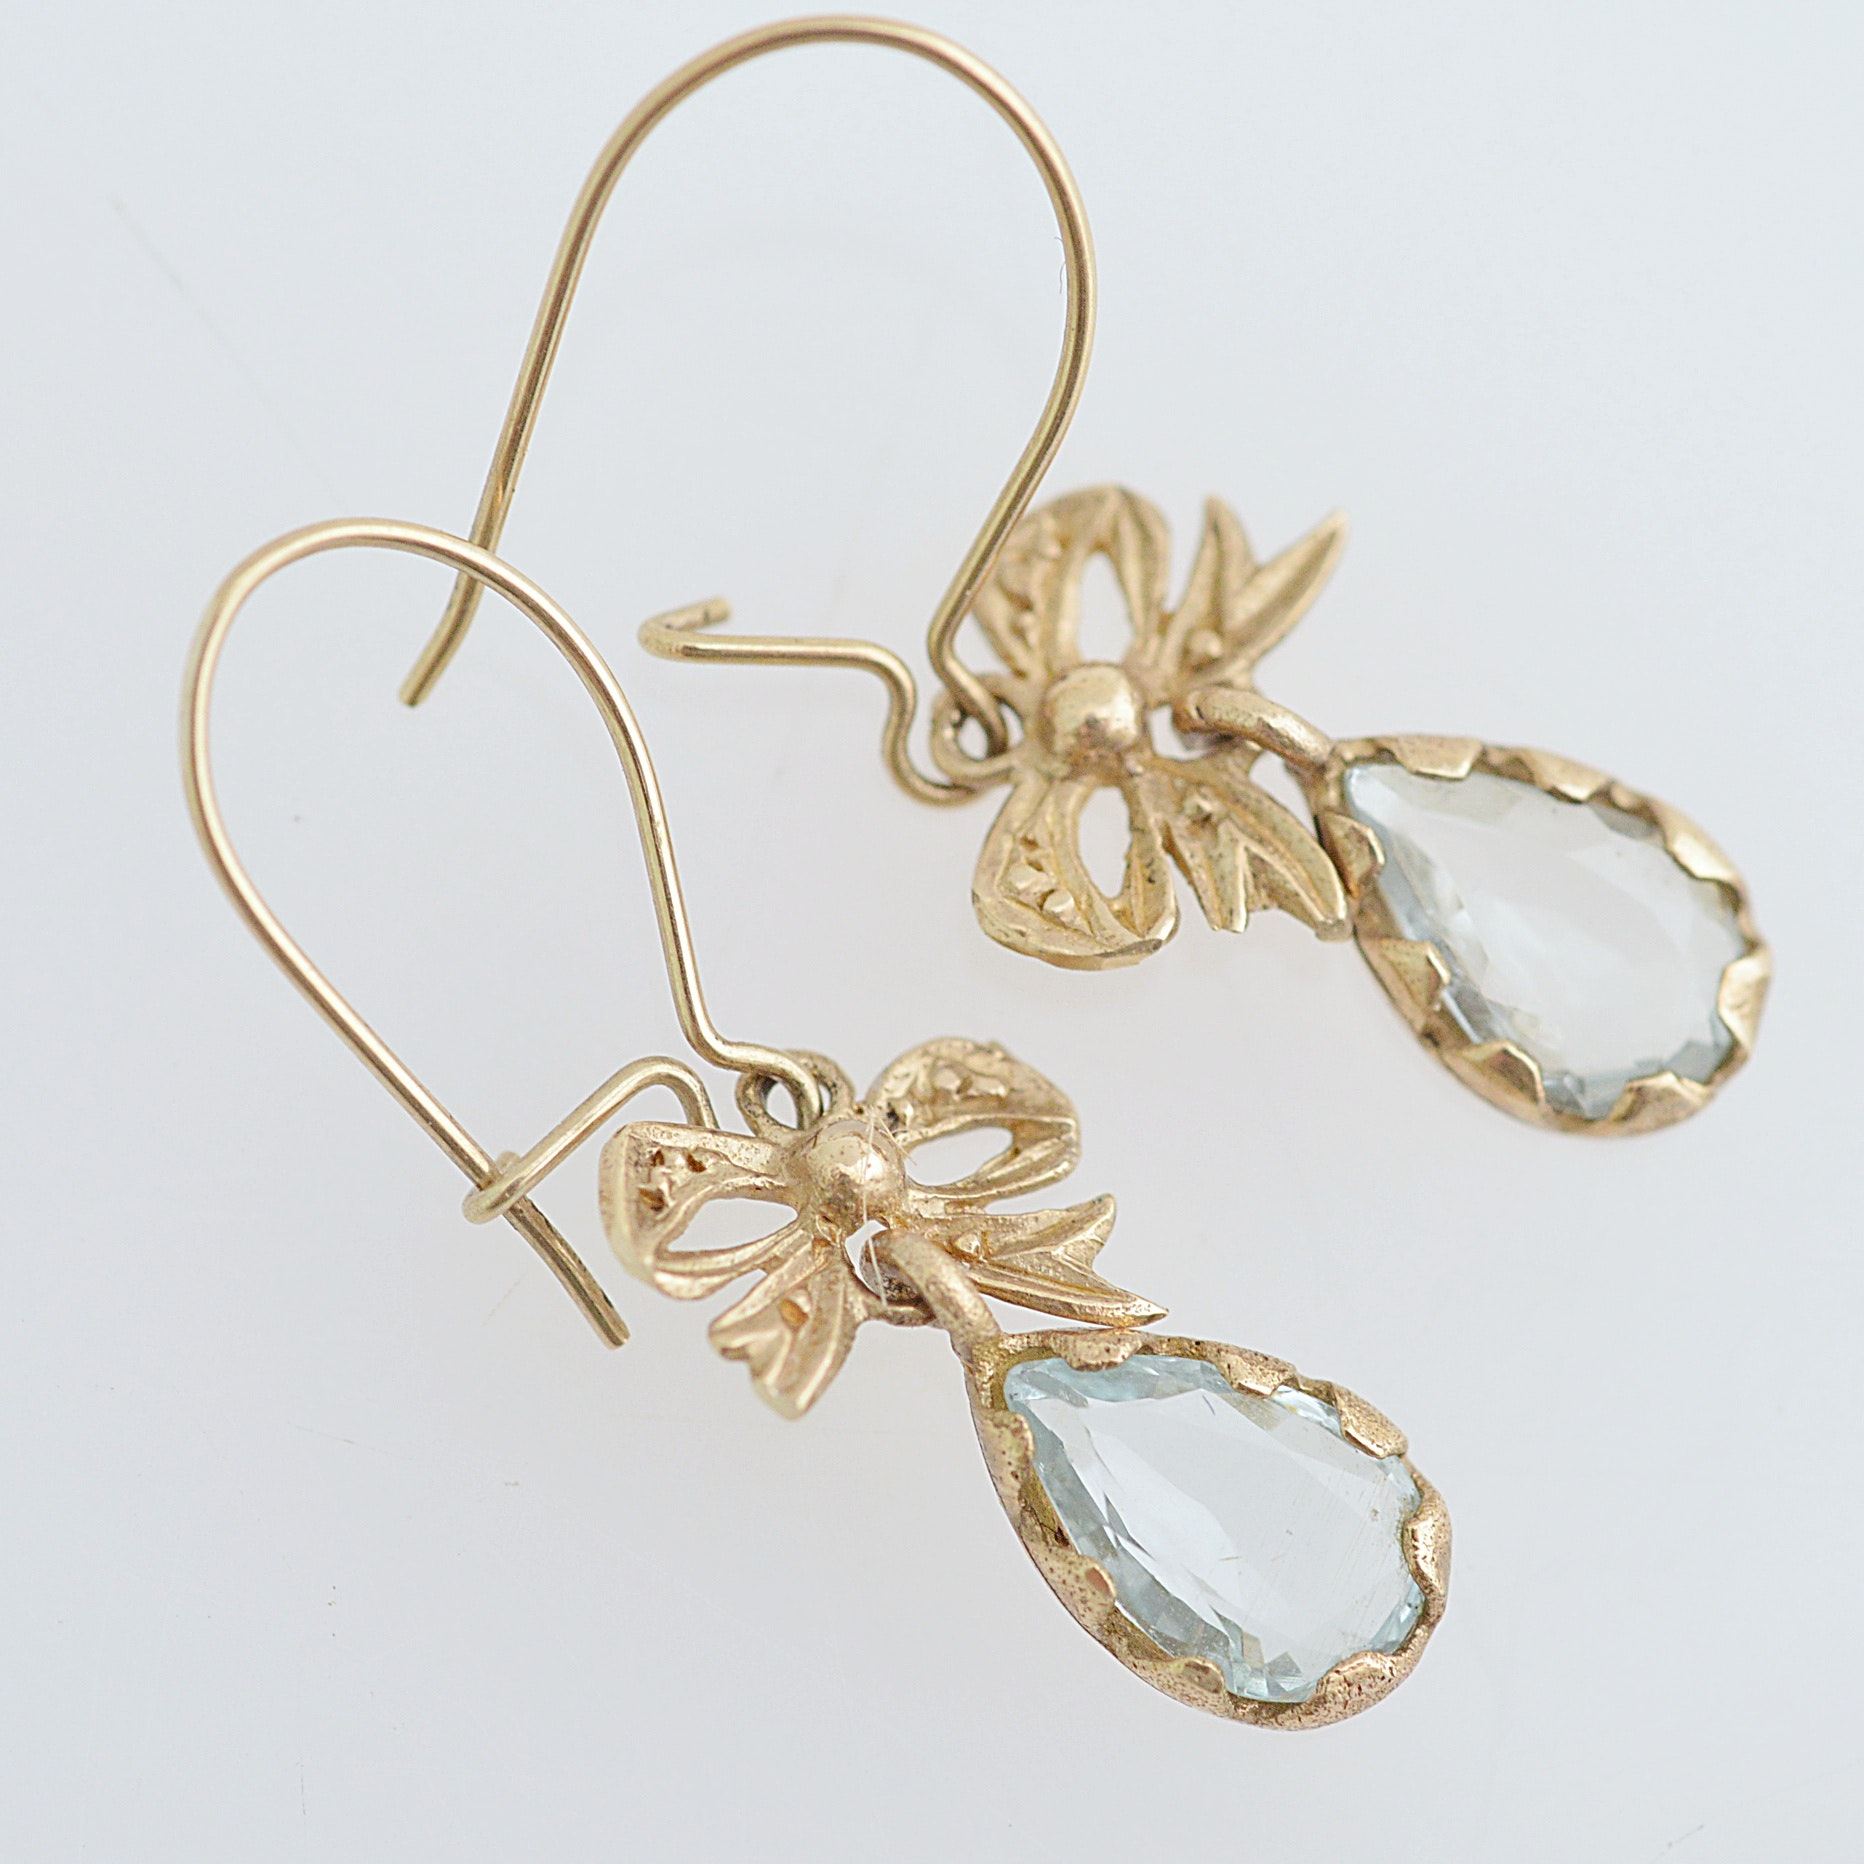 10K Yellow Gold and Aquamarine Pierced Earrings